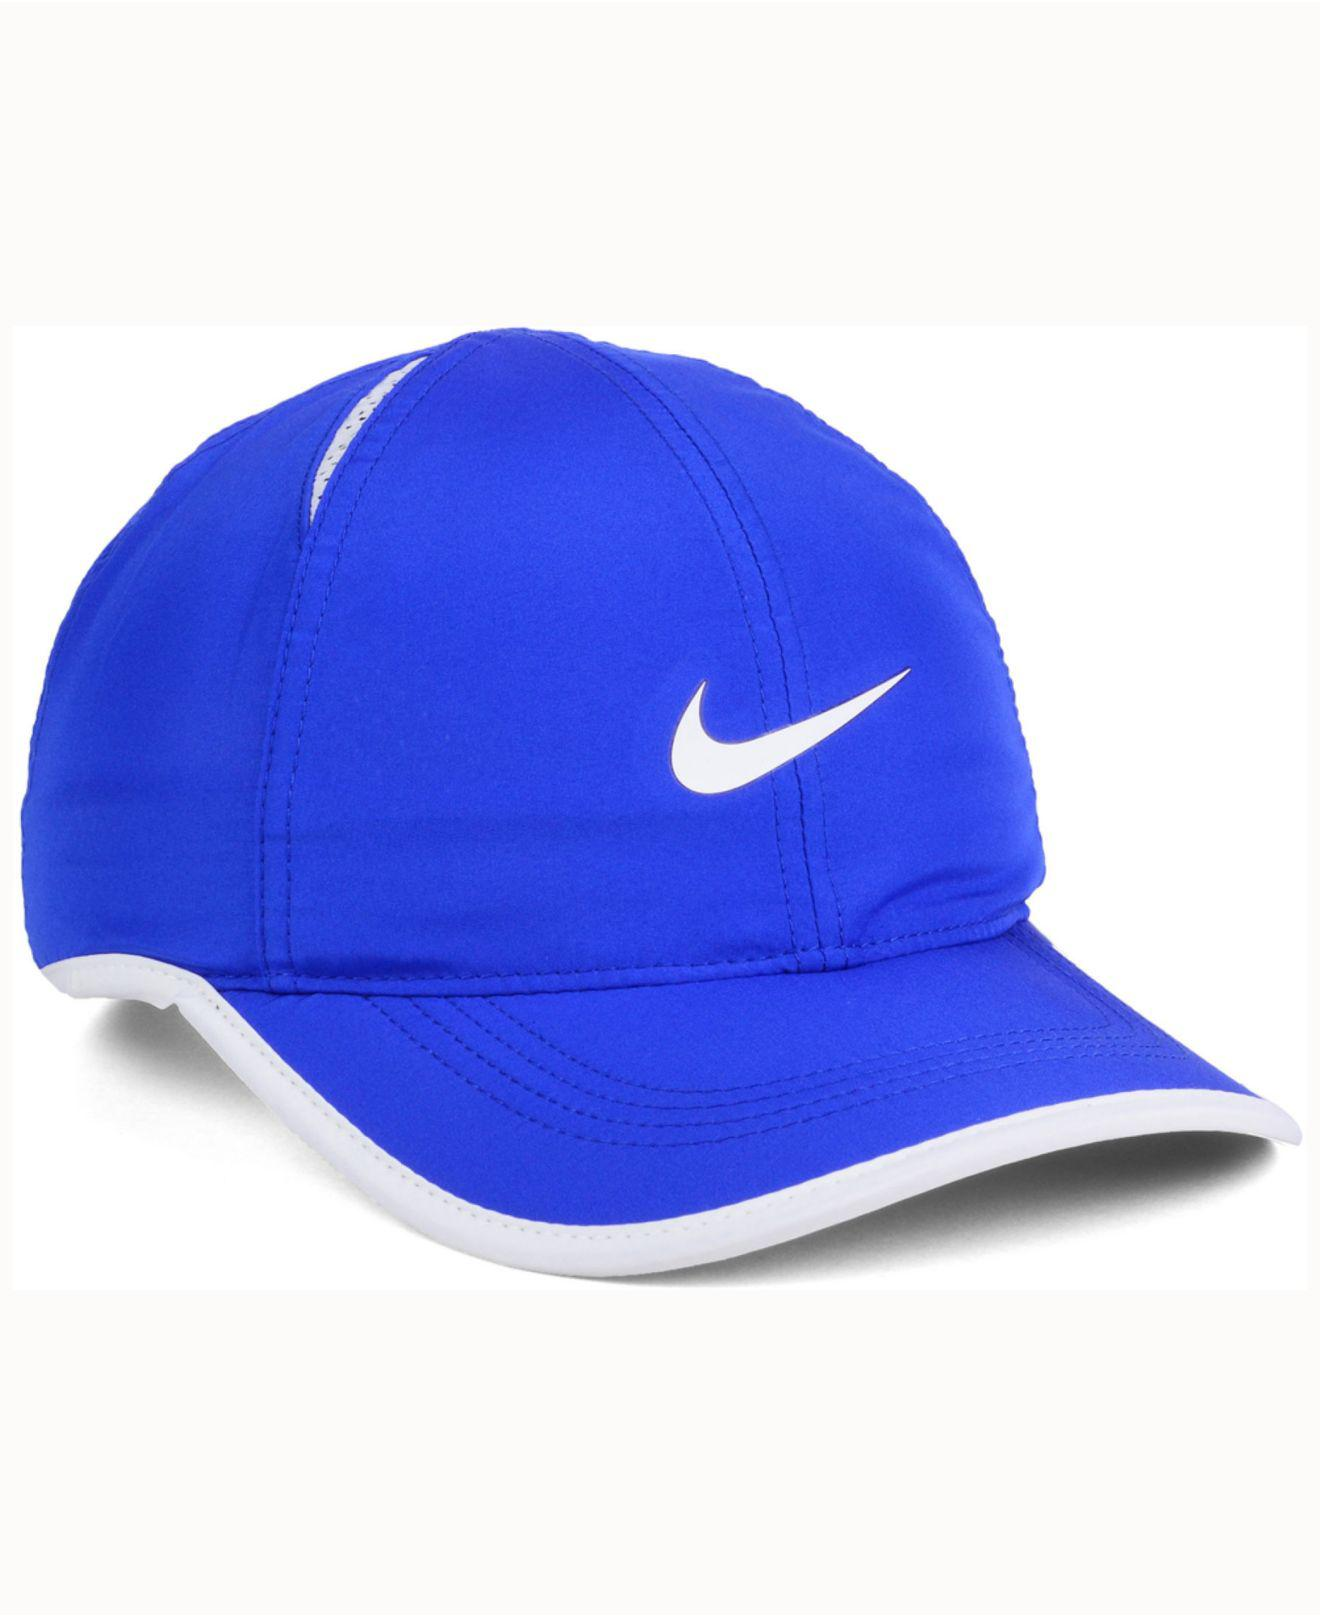 huge discount a6b39 ff1d6 ... royal heritage 86 wordmark swoosh adjustable hat 715a2 290b9  spain  lyst nike duke blue devils featherlight cap in blue for men 8cb3e 7a75c